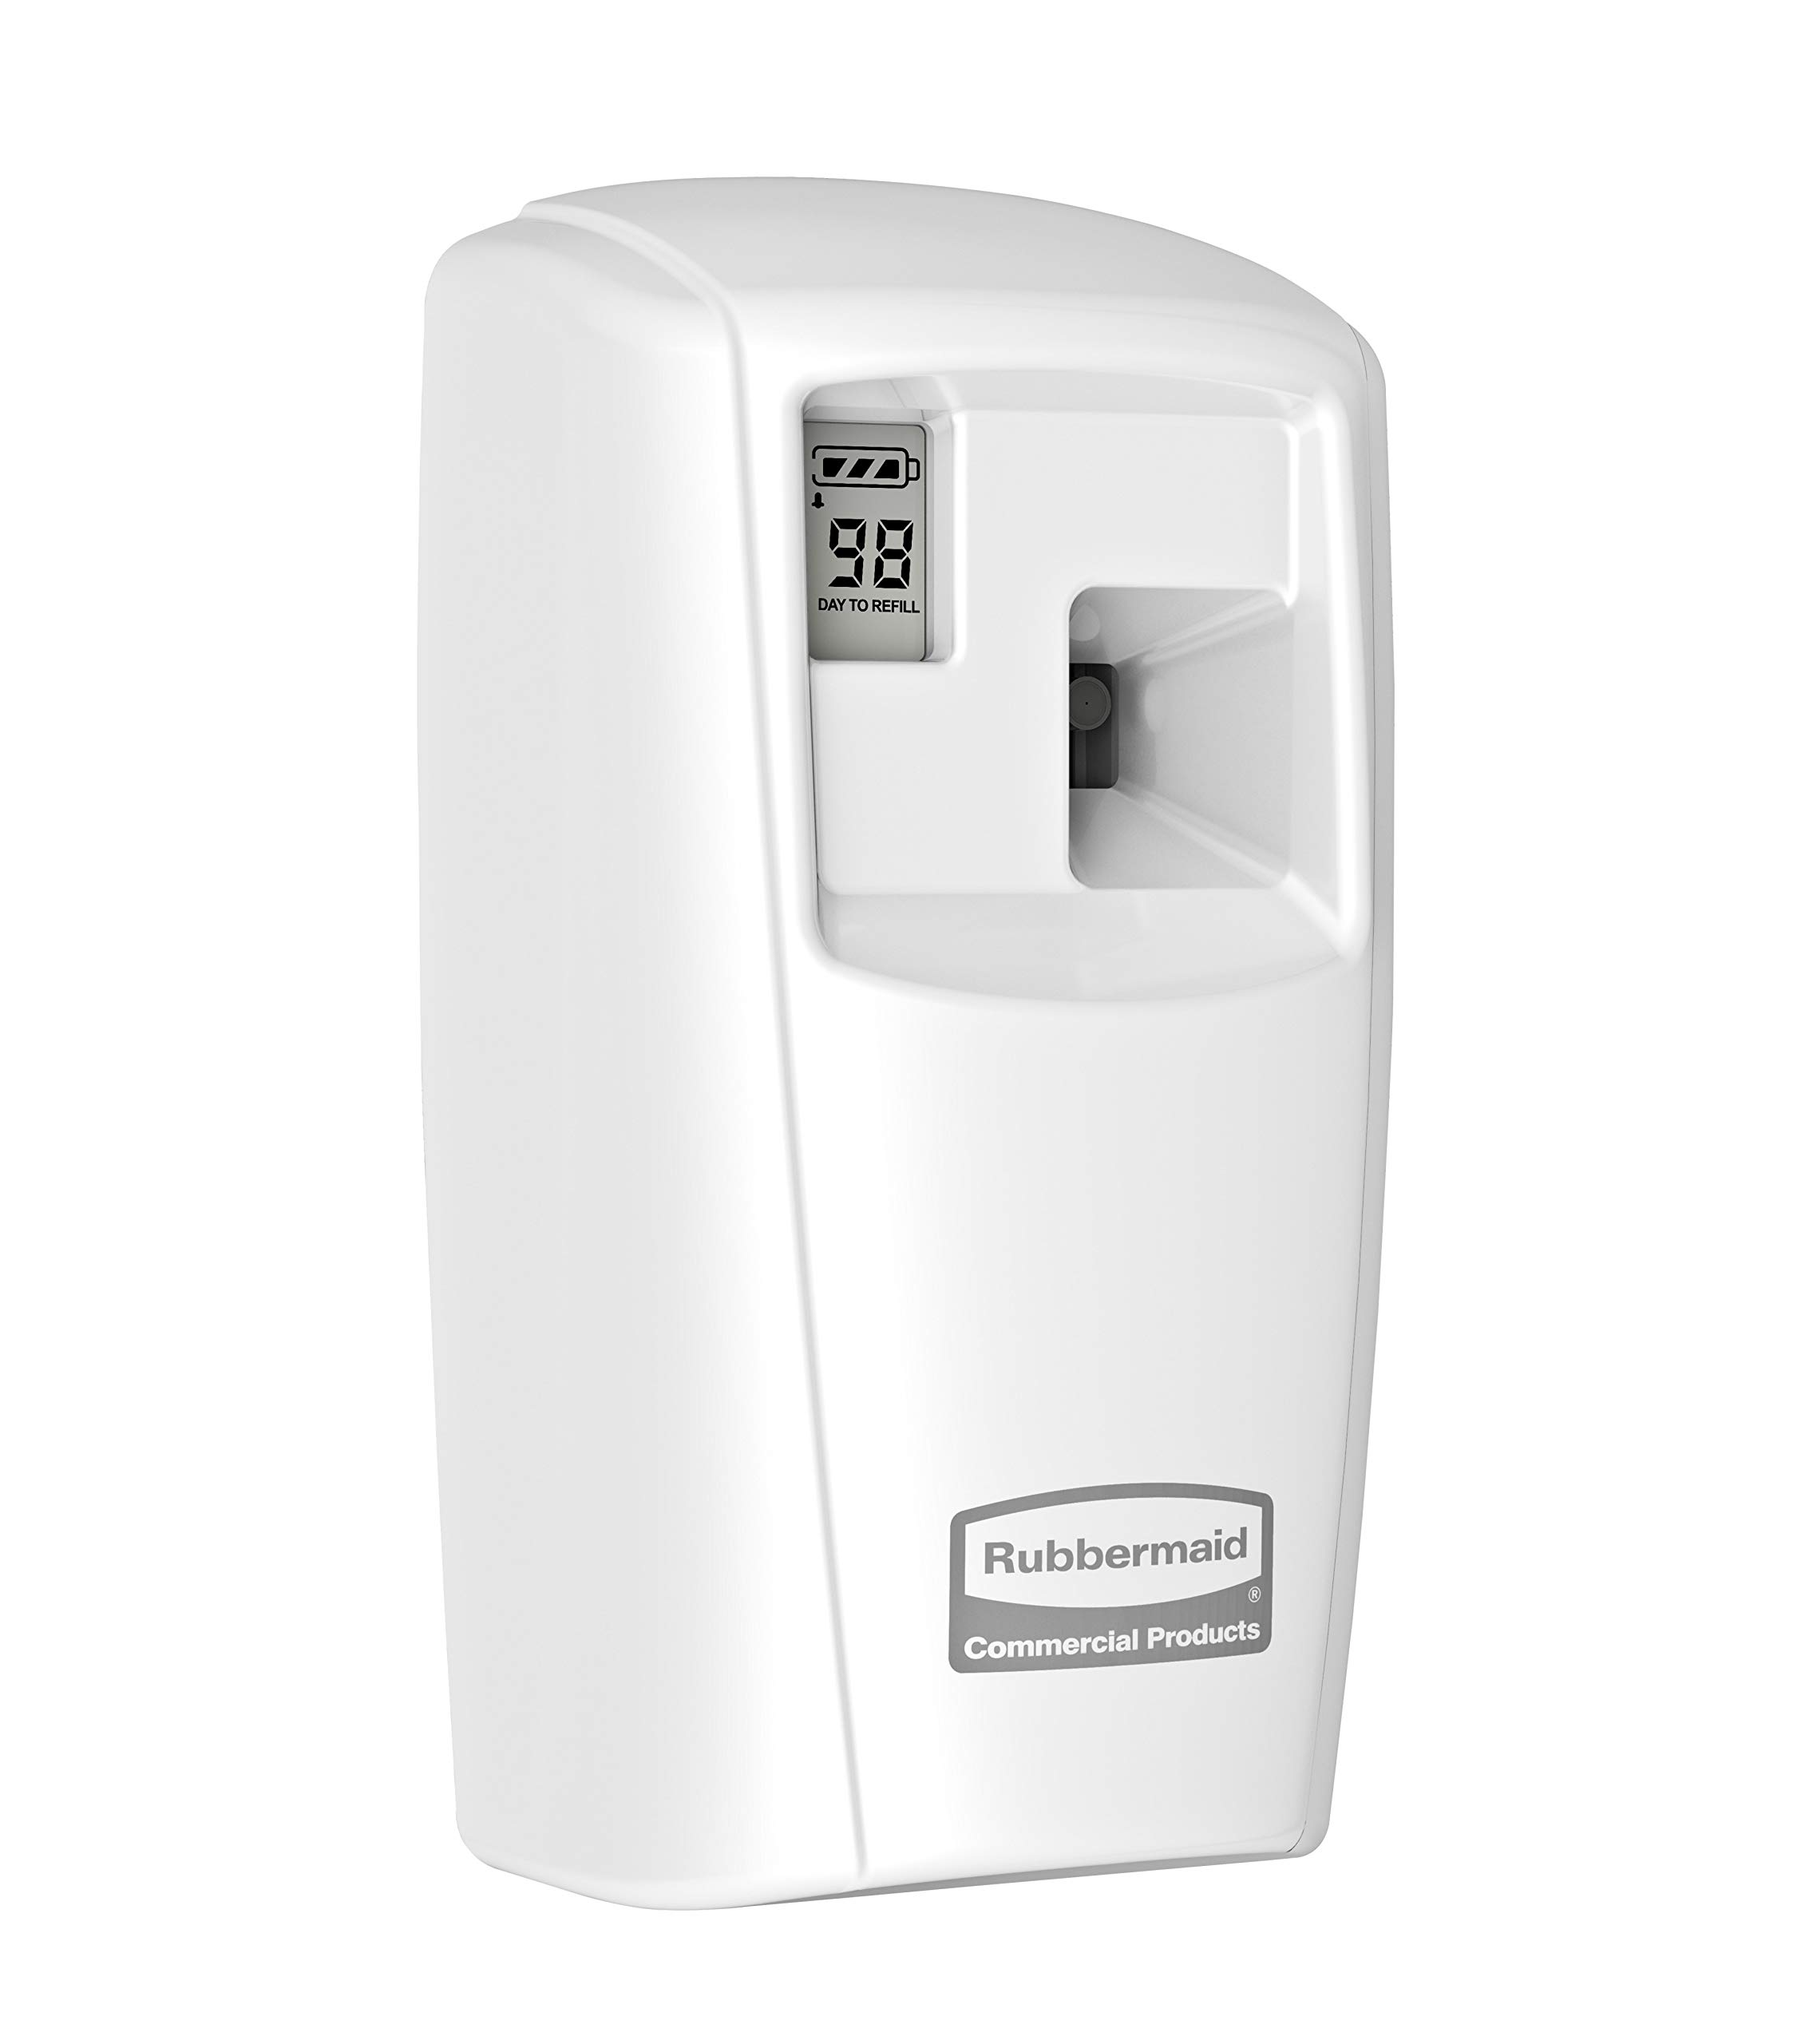 Rubbermaid Commercial Products Microburst Automated Odor-Controlling Aerosol Air Care System, MB3000 Dispenser, White